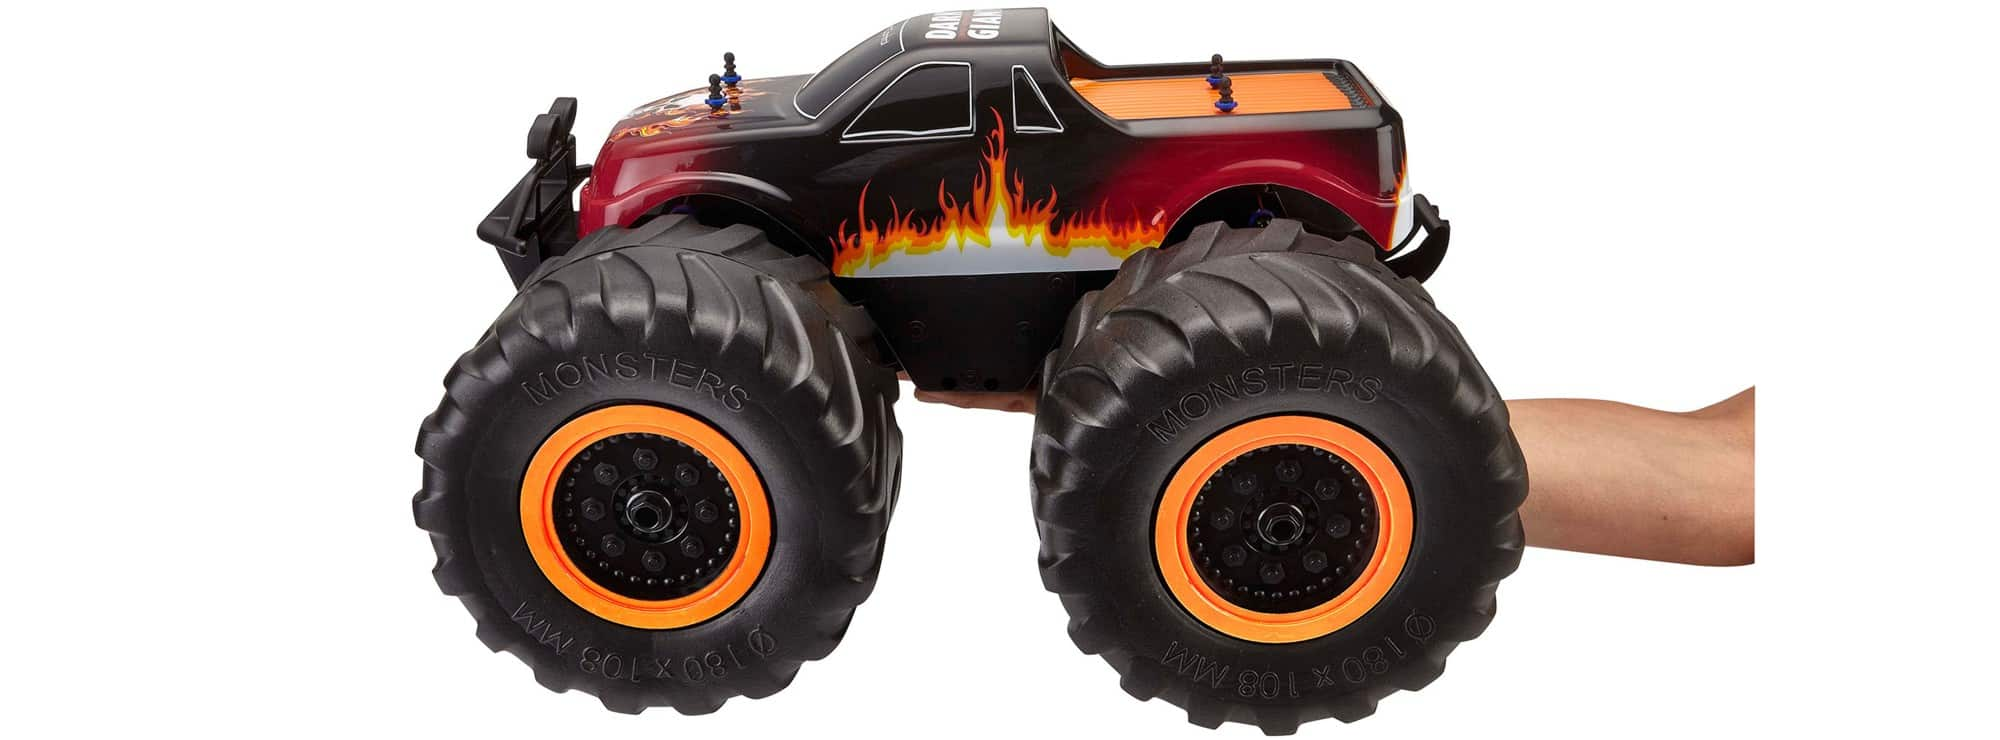 ausverkauft revell 23511 monster truck dark giant 2 4ghz. Black Bedroom Furniture Sets. Home Design Ideas